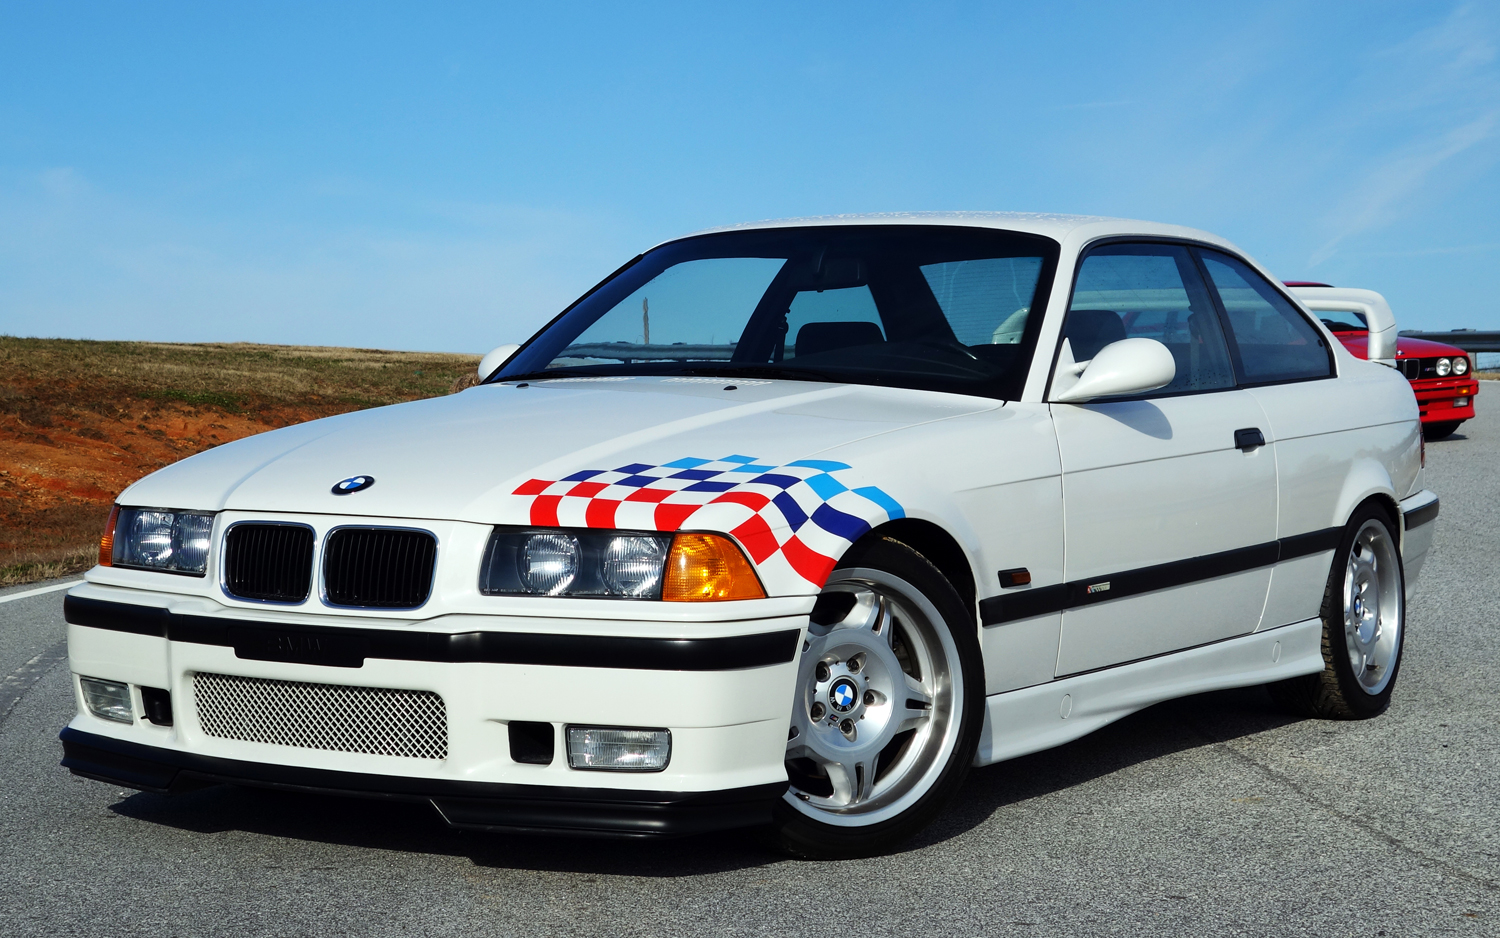 E36 M3 Fuse Box All Kind Of Wiring Diagrams \u2022 1999 BMW E36 Fuse Layout  E36 M3 Fuse Box Location